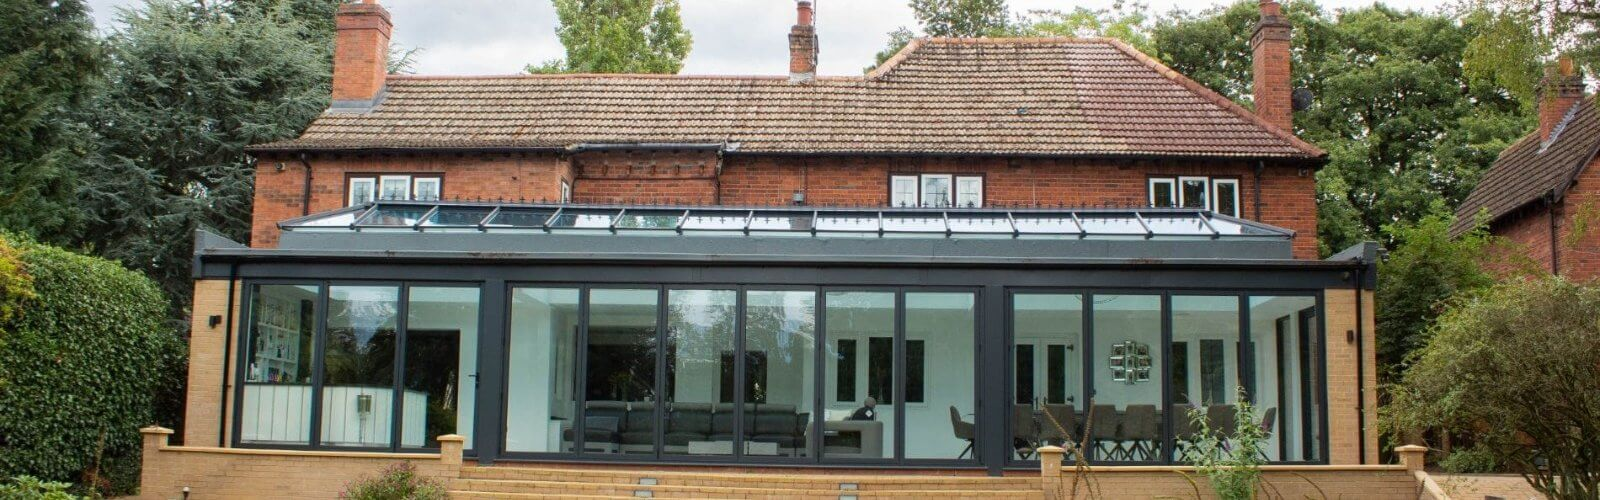 Do I Need Planning Permission For A Conservatory Extension in Birmingham? - Feature